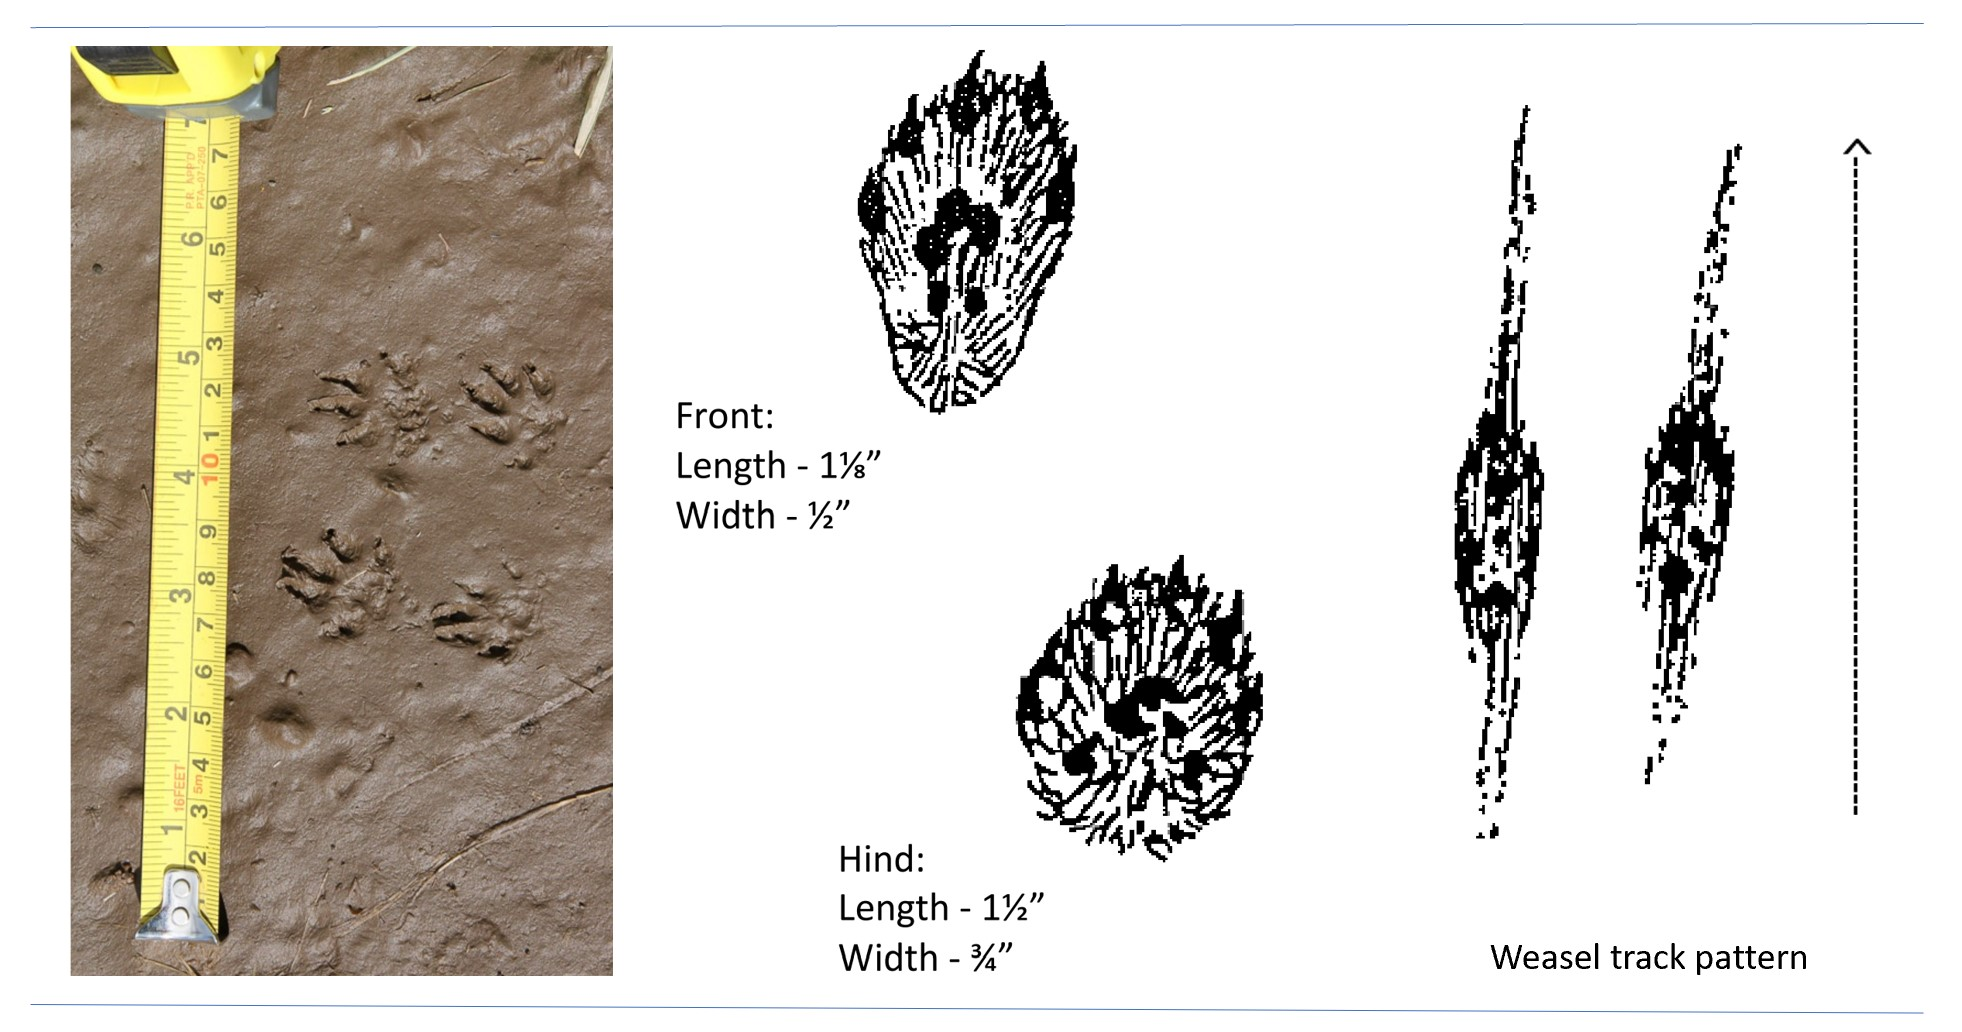 Photo and illustrations of weasel tracks.